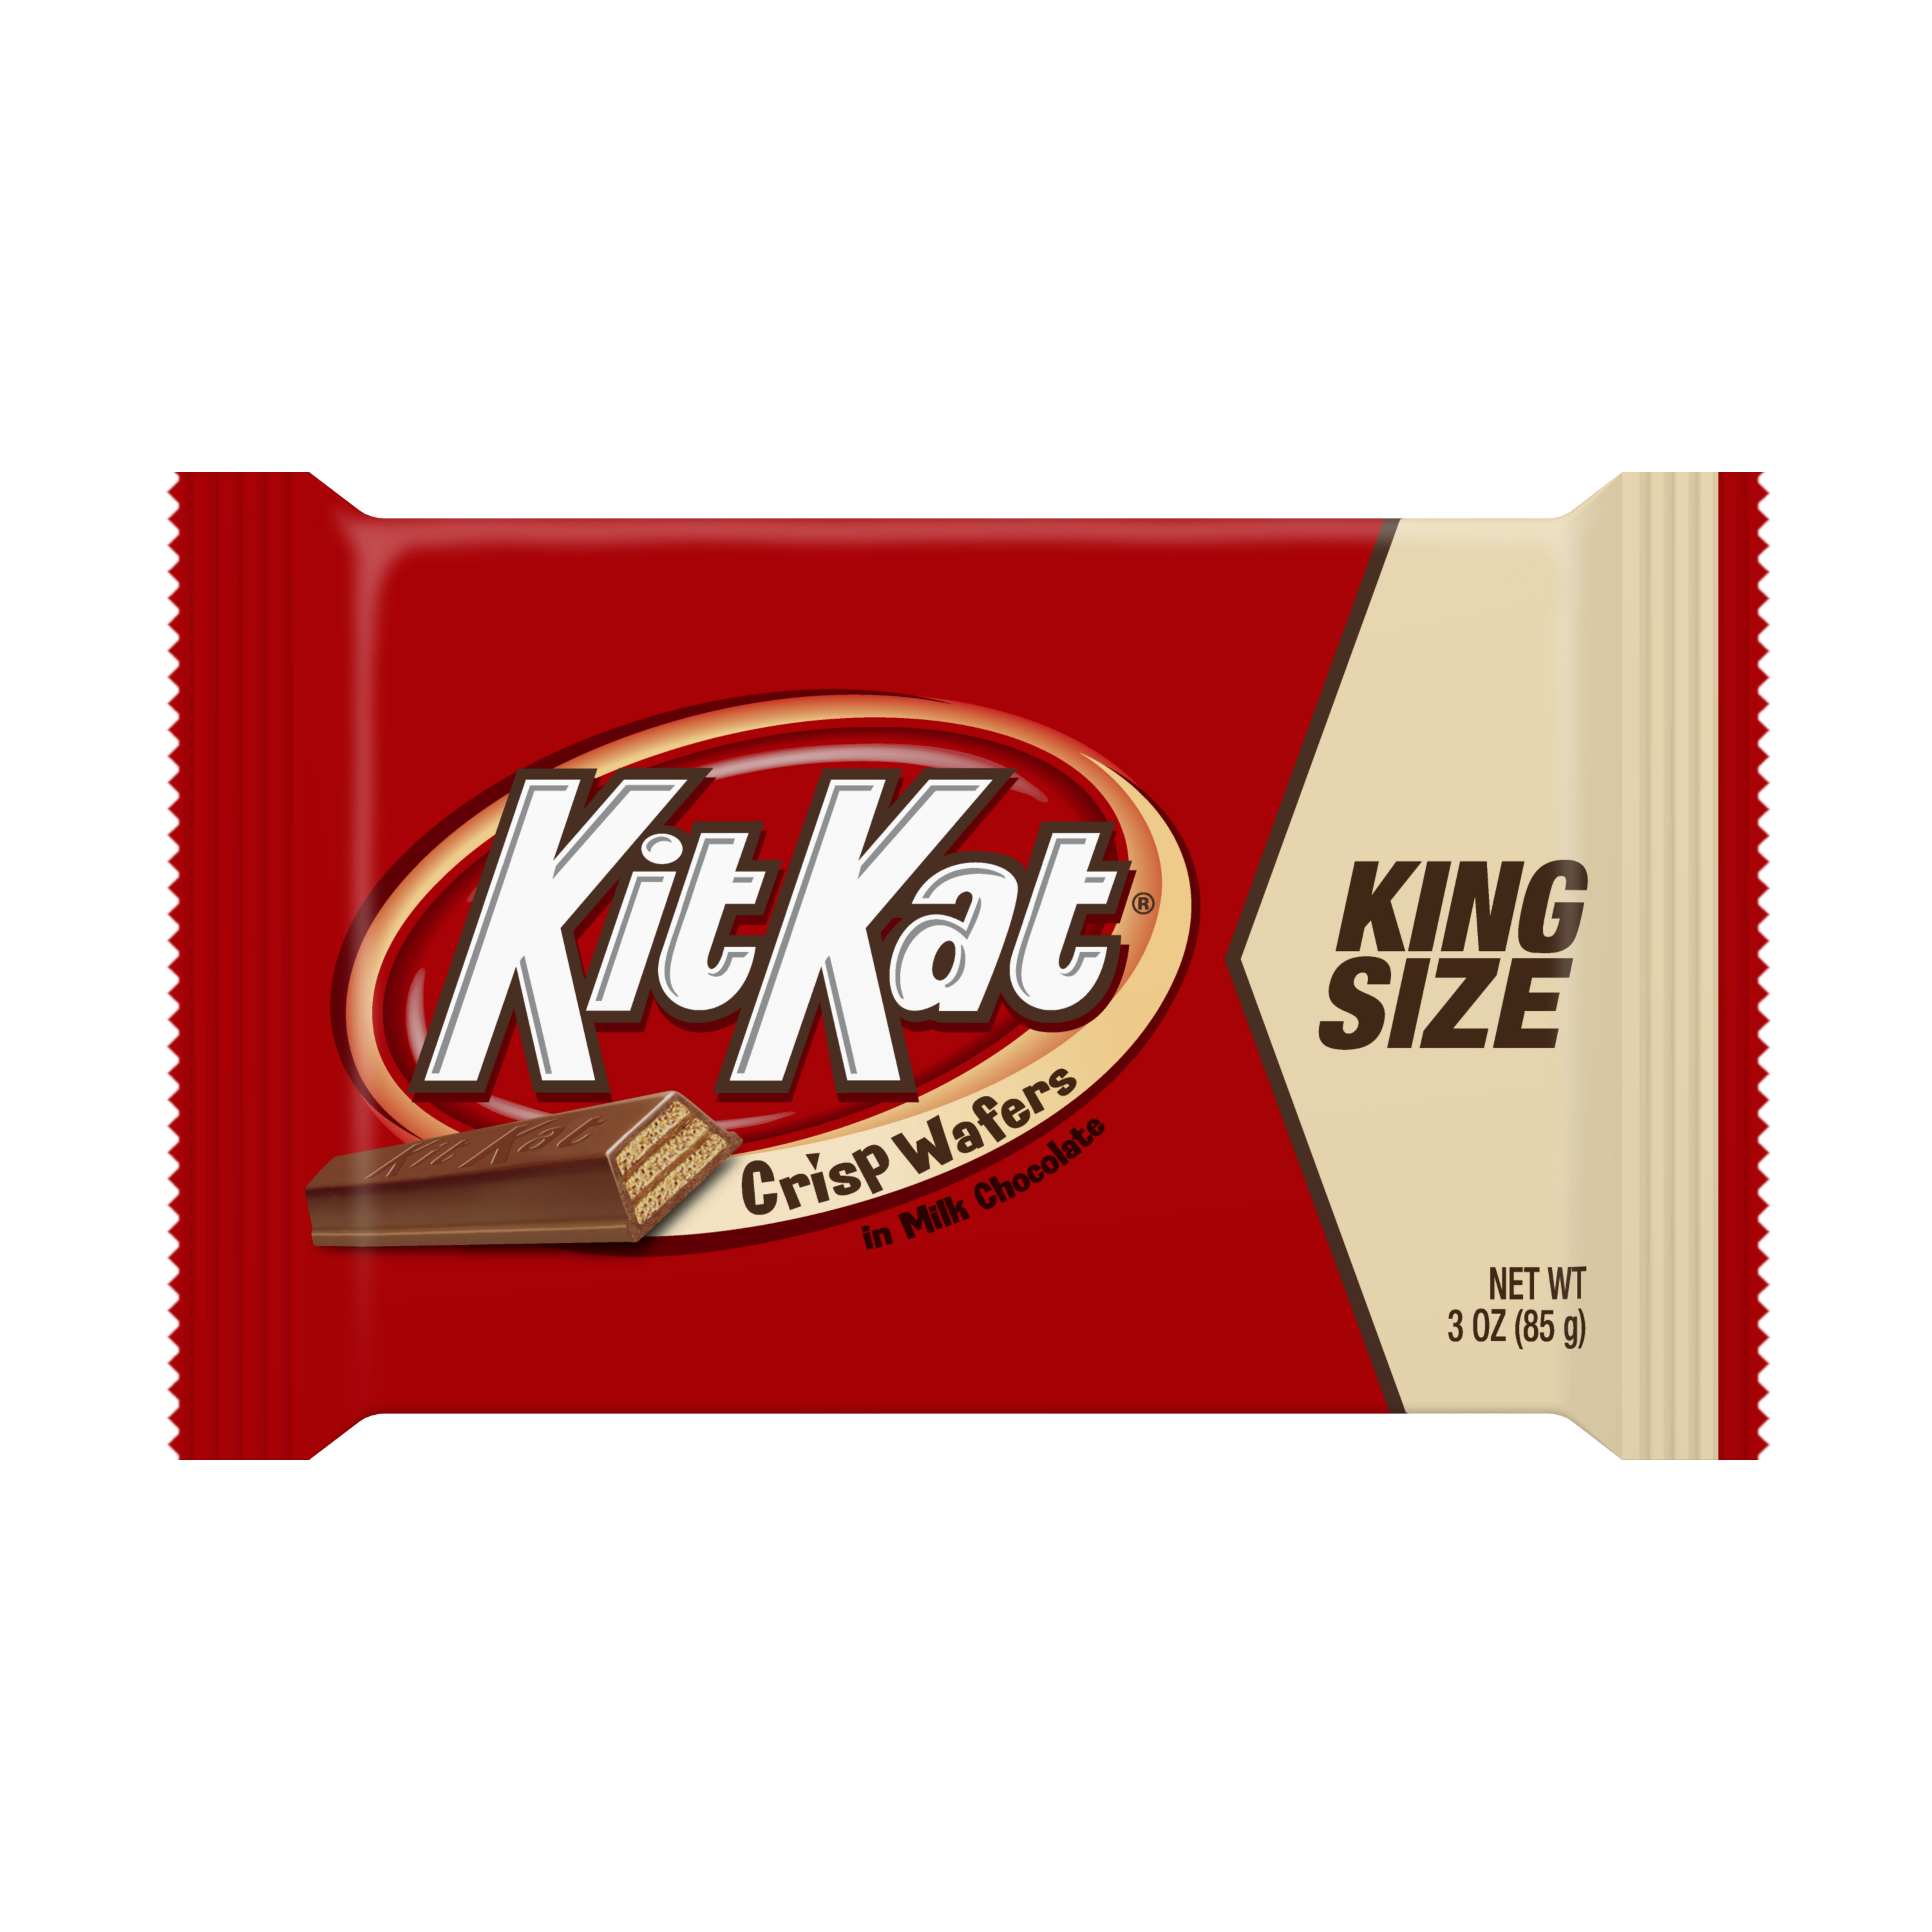 KIT KAT King Size Wafer Bar, 3 Ounces